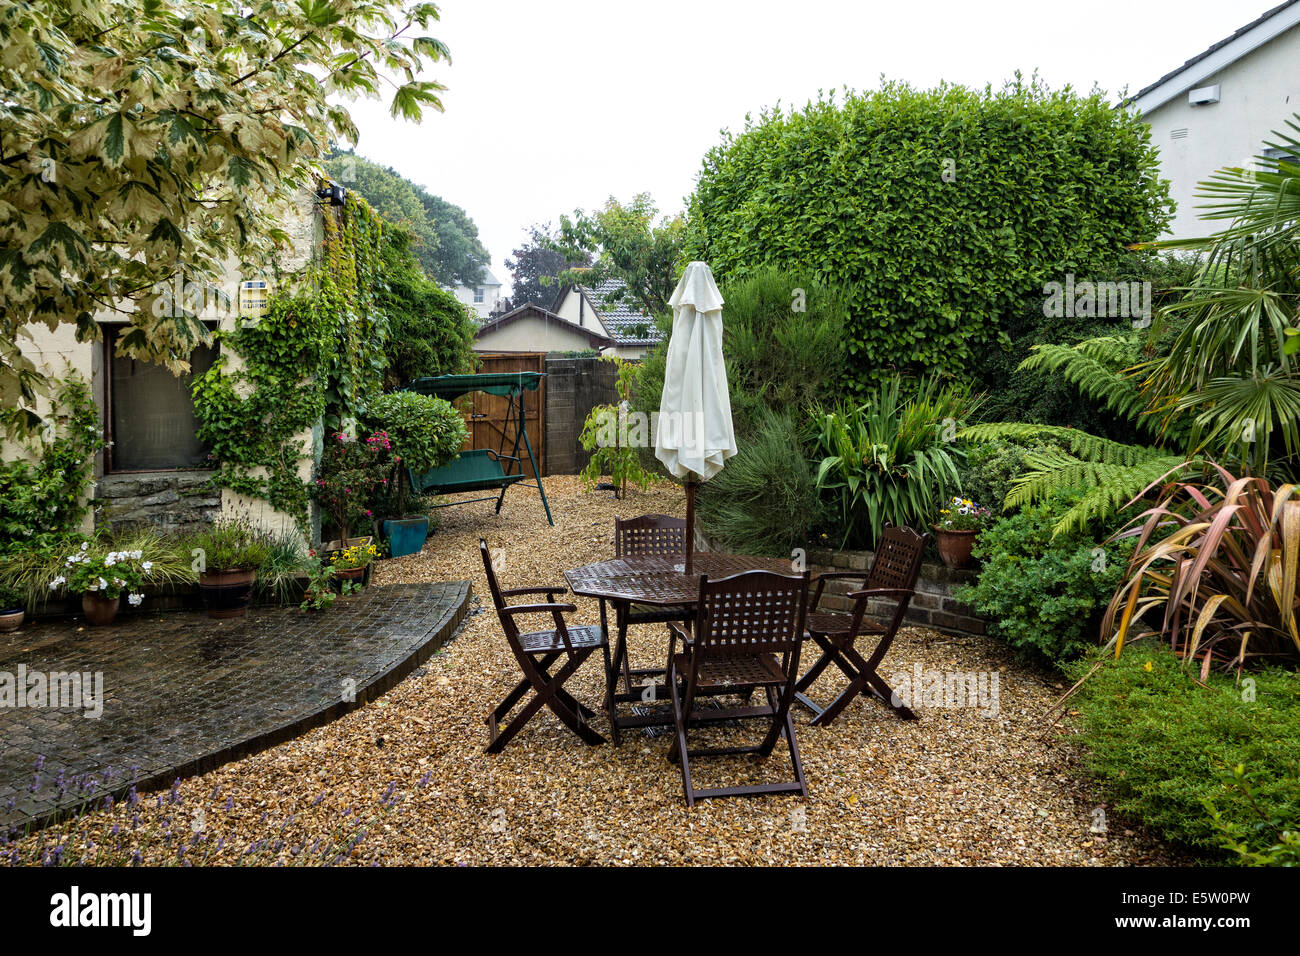 A wet and rainy Irish garden in mid-summer - Stock Image